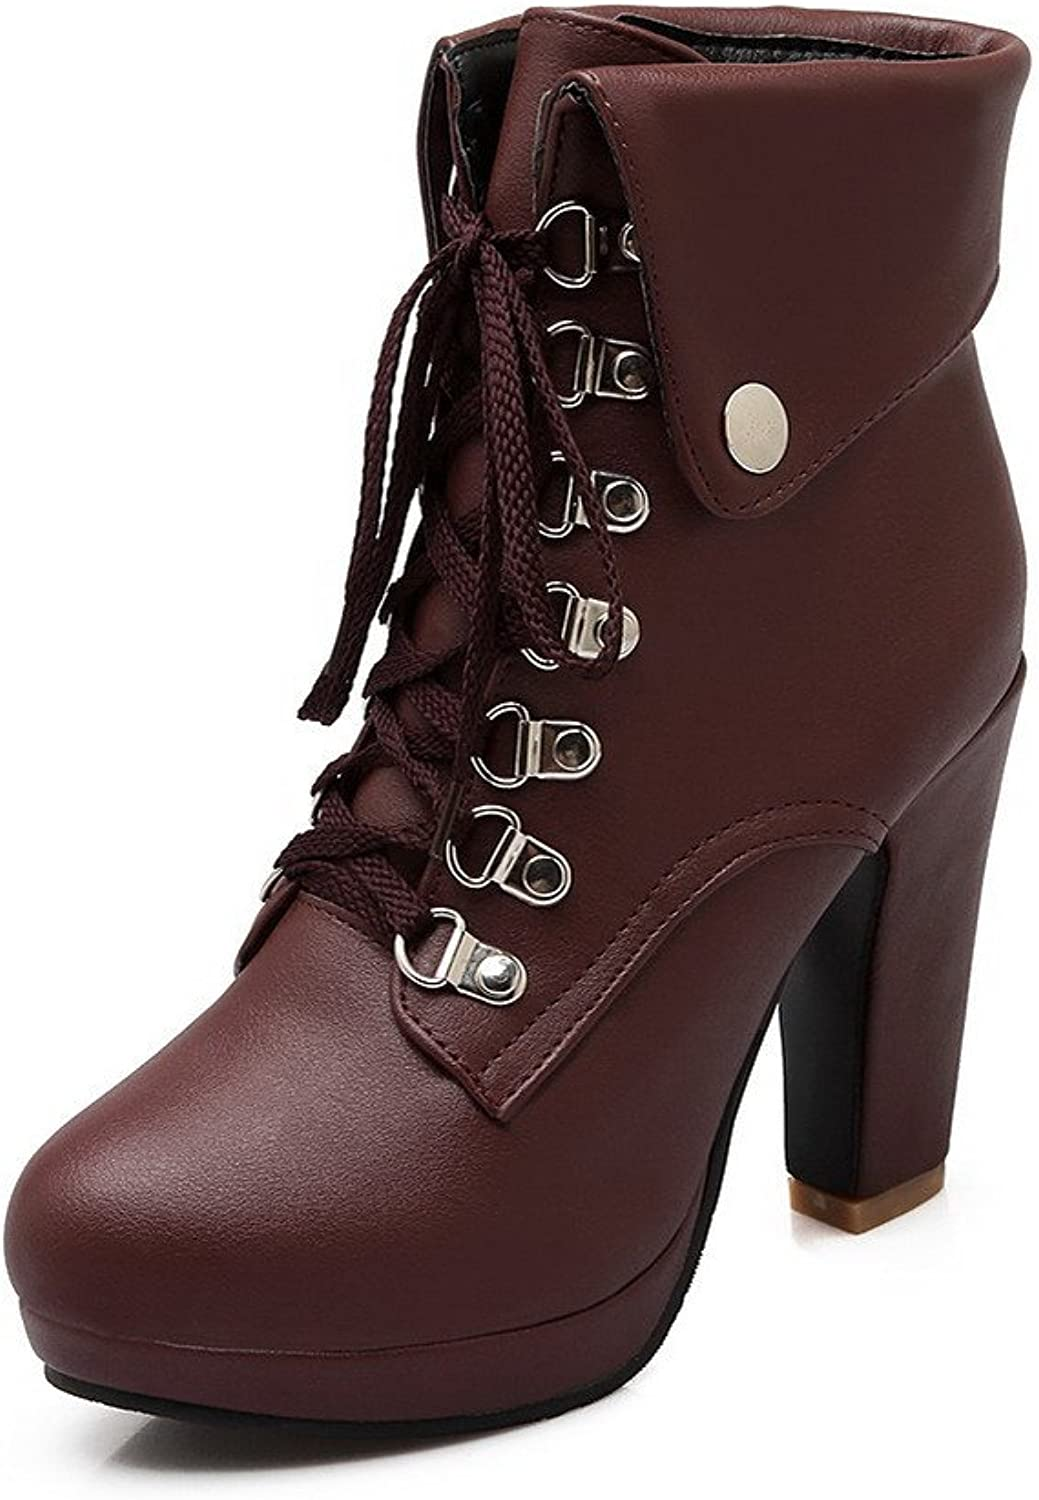 WeenFashion Women's Pu High Heels Round Closed Toe Solid Lace Up Boots